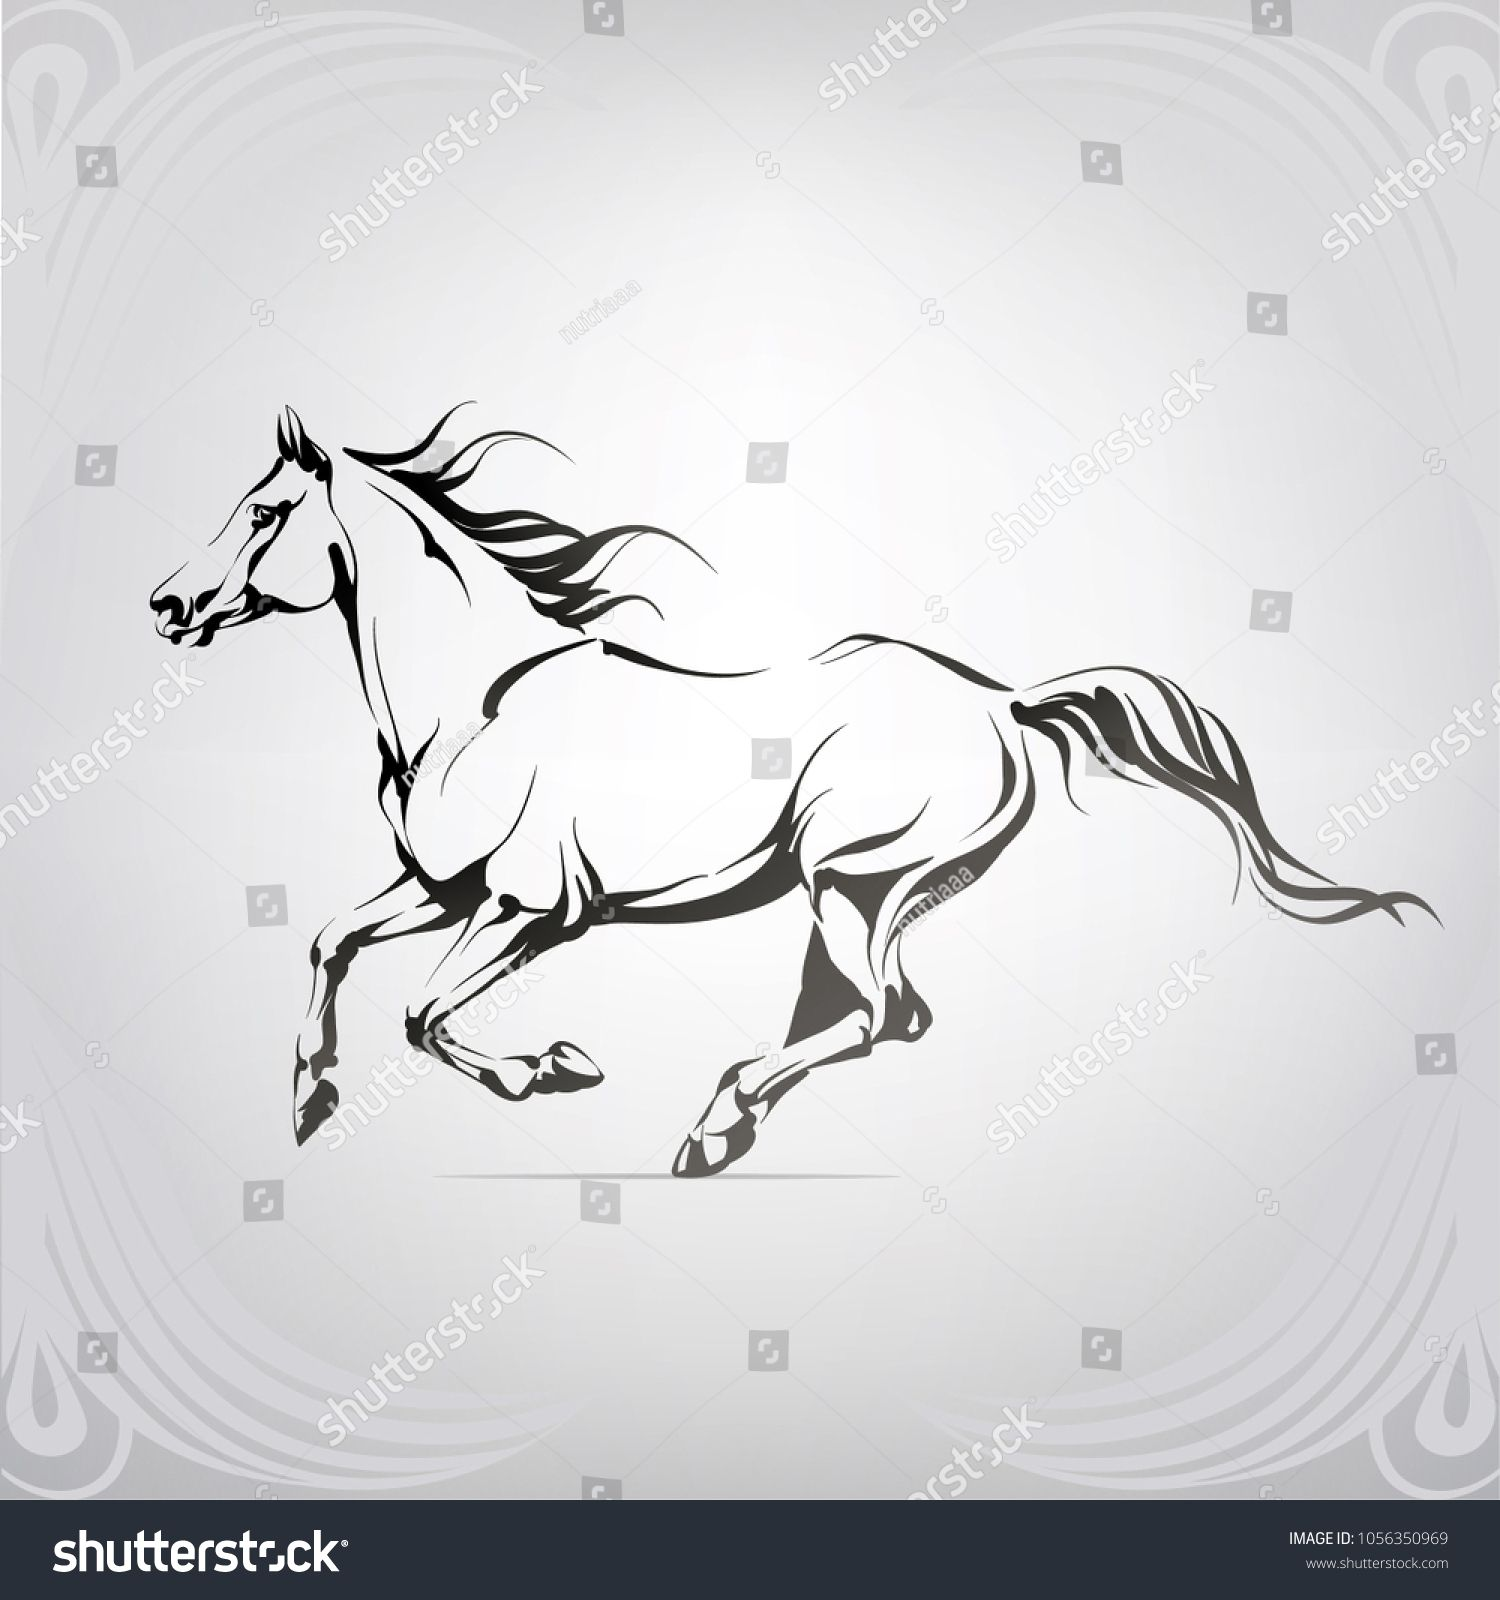 Vector Silhouette Of A Running Horse Horse Silhouette Horse